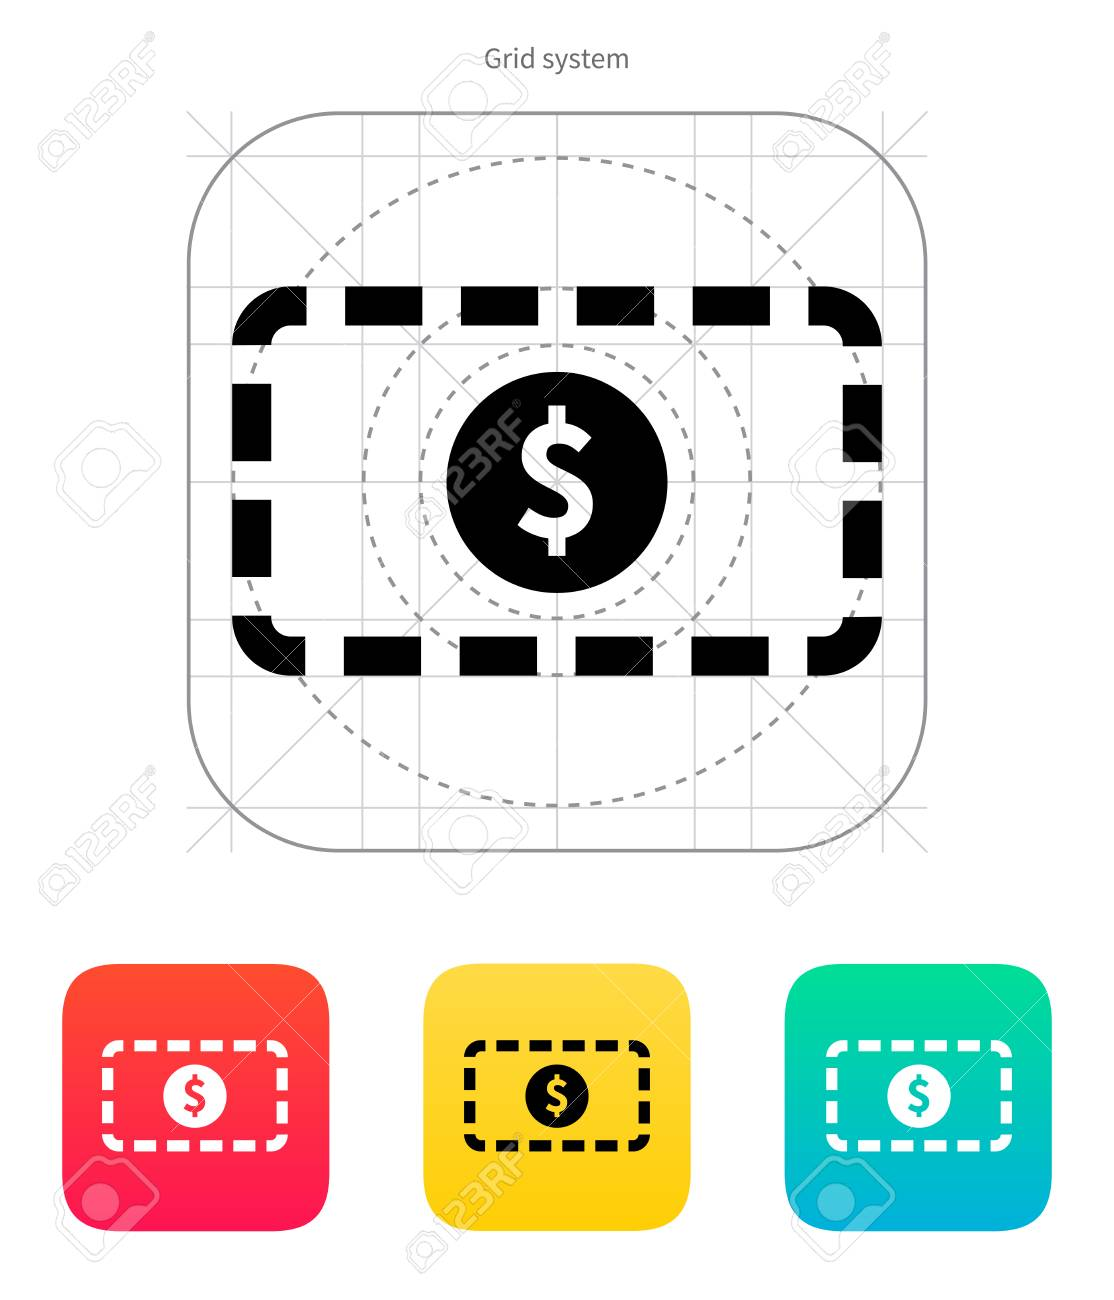 Banknote icon. Vector illustration. Stock Vector - 22784538